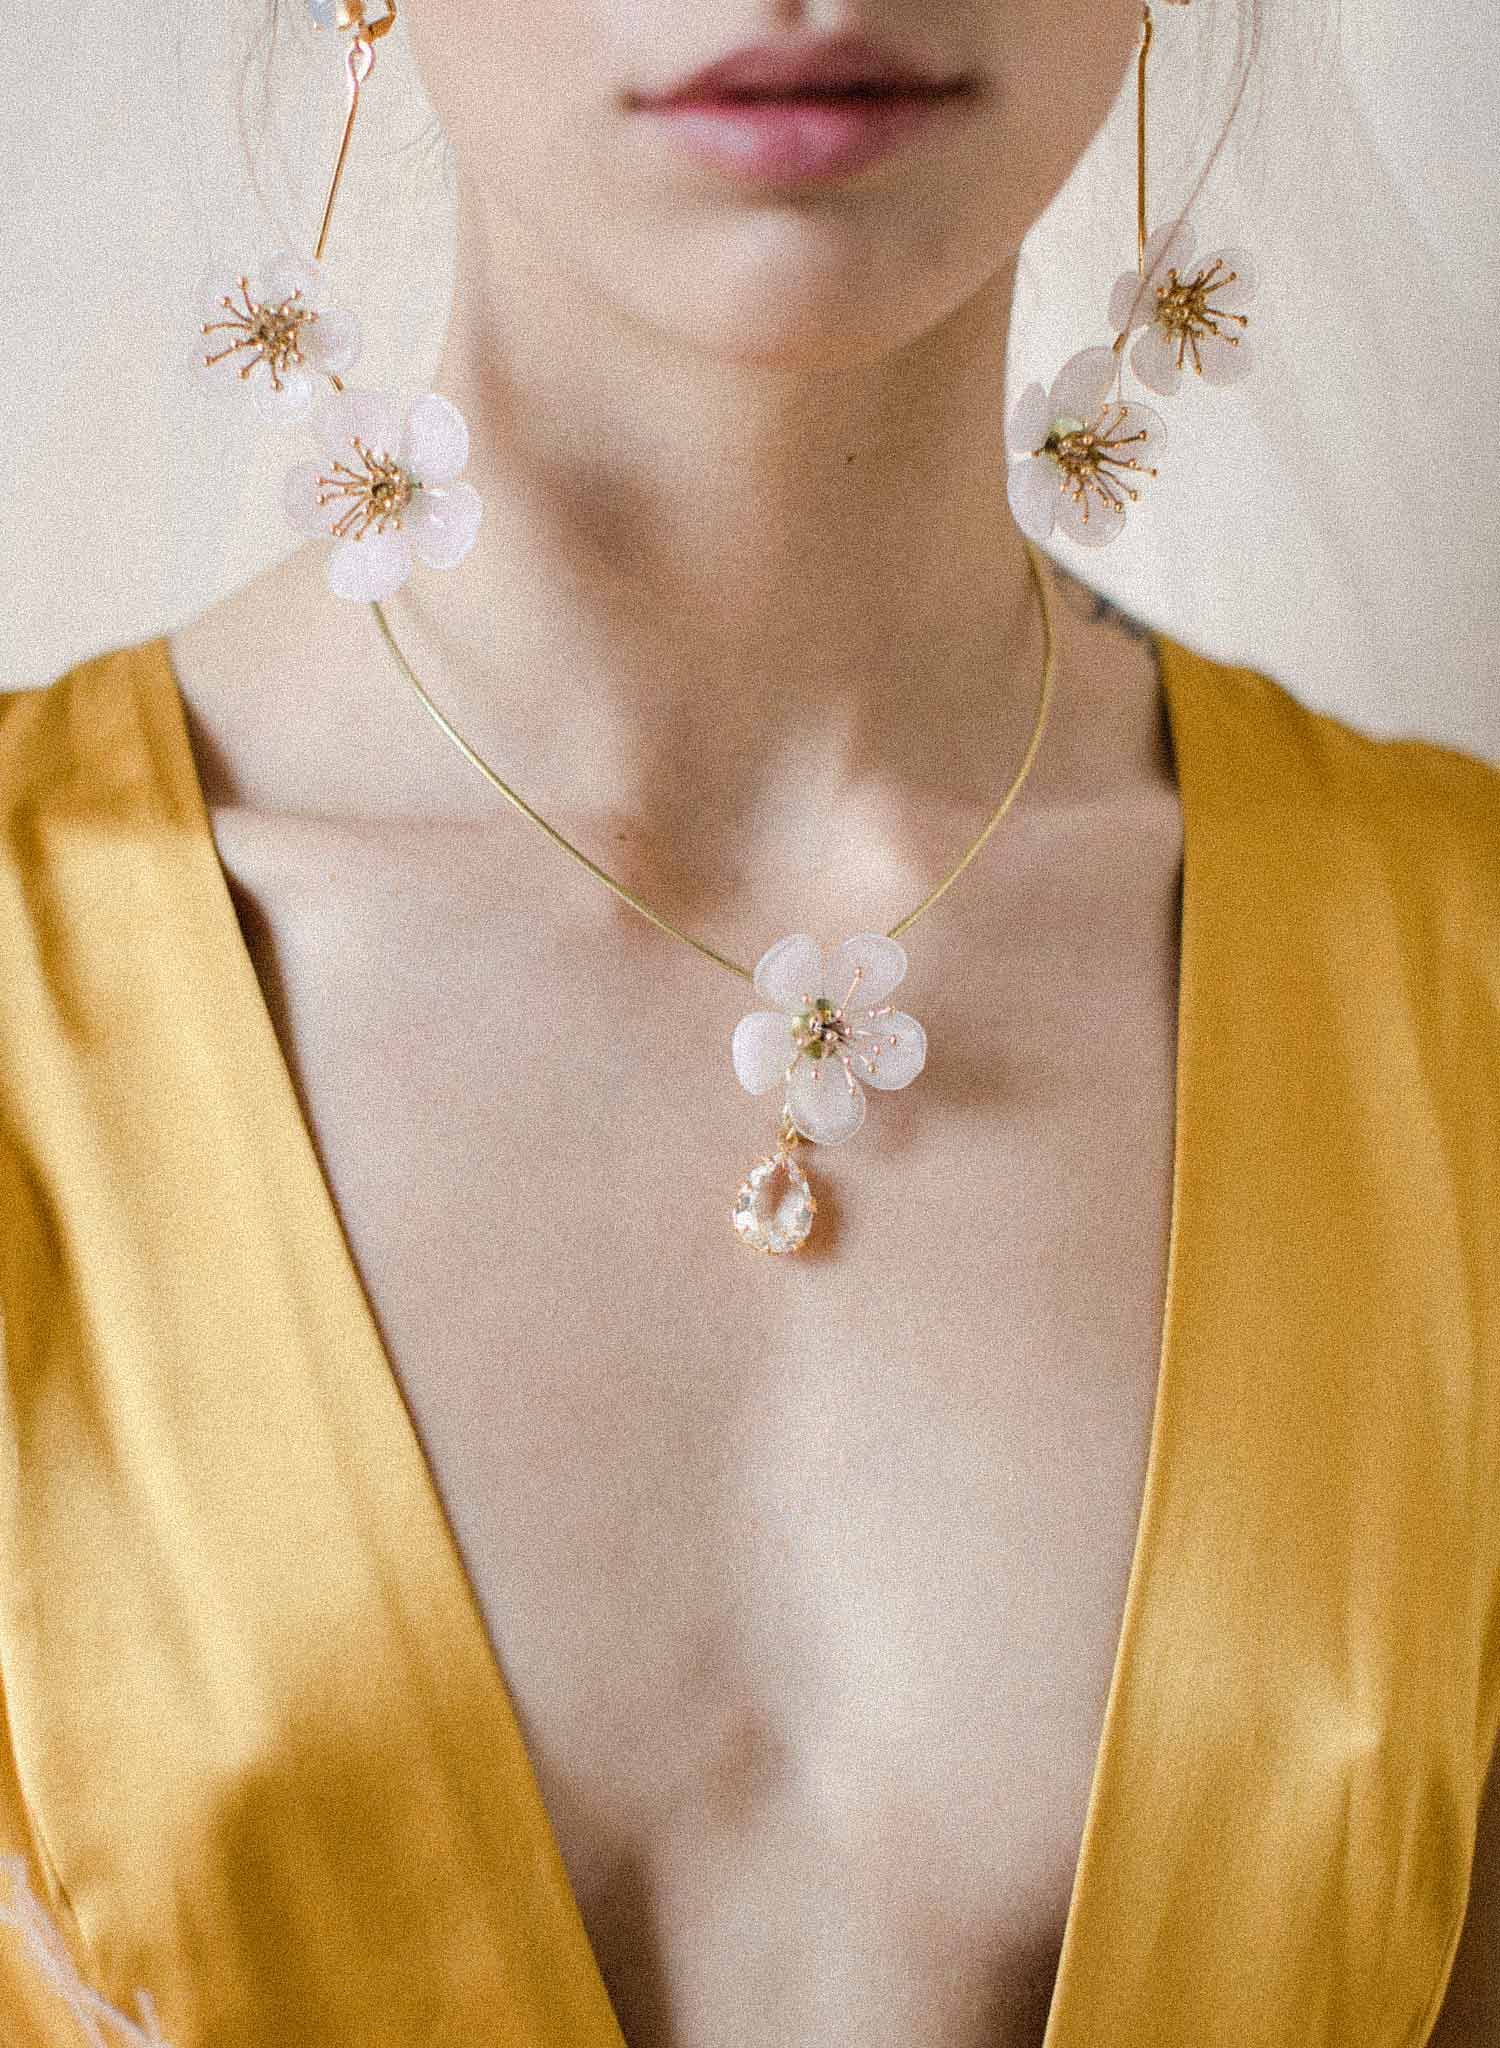 Plum blossom and drop crystal necklace - Style #2060